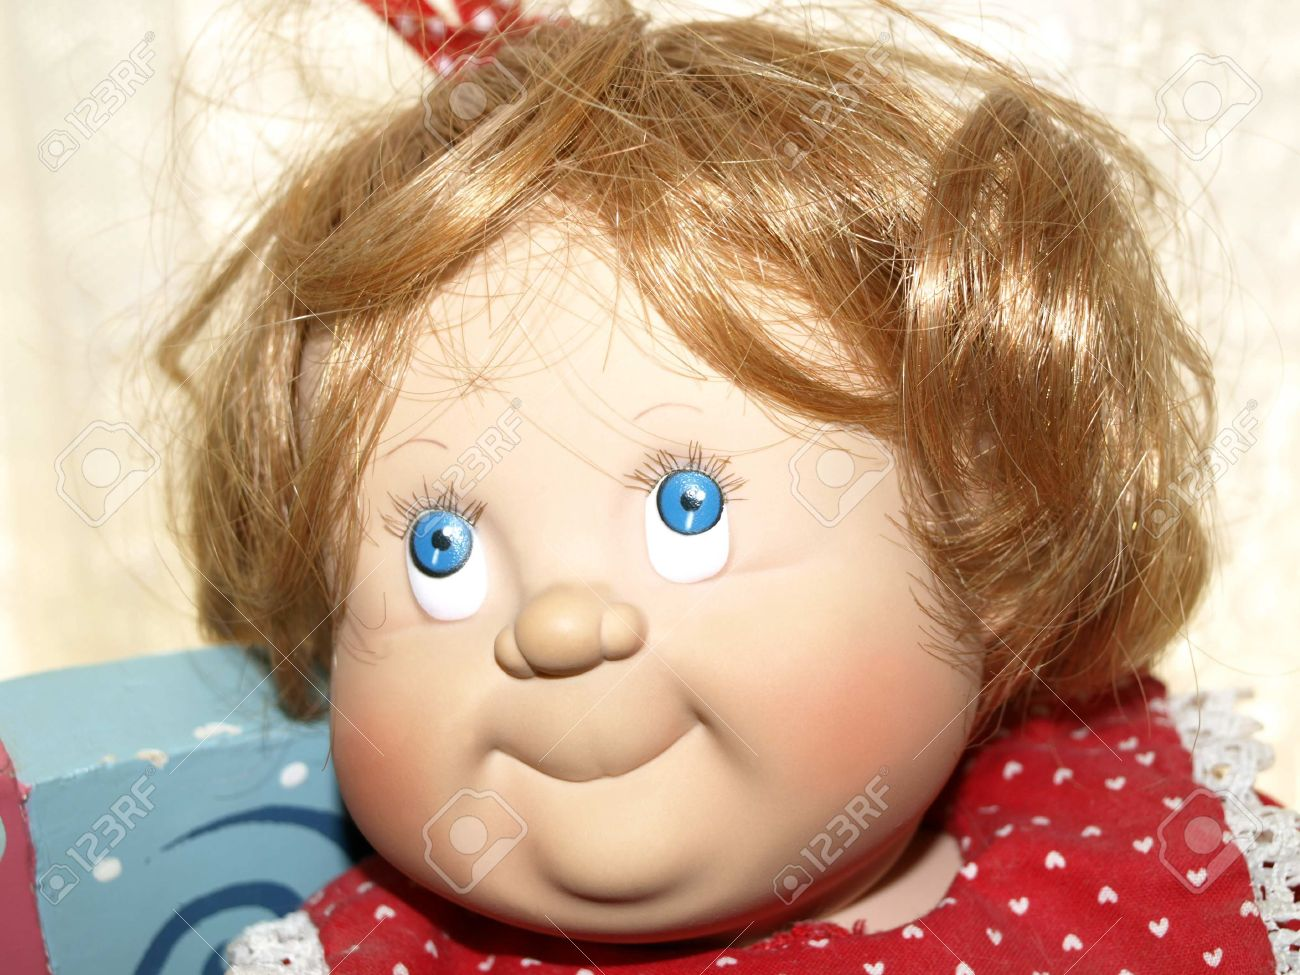 Cute Doll Face Stock Photo - 2274320